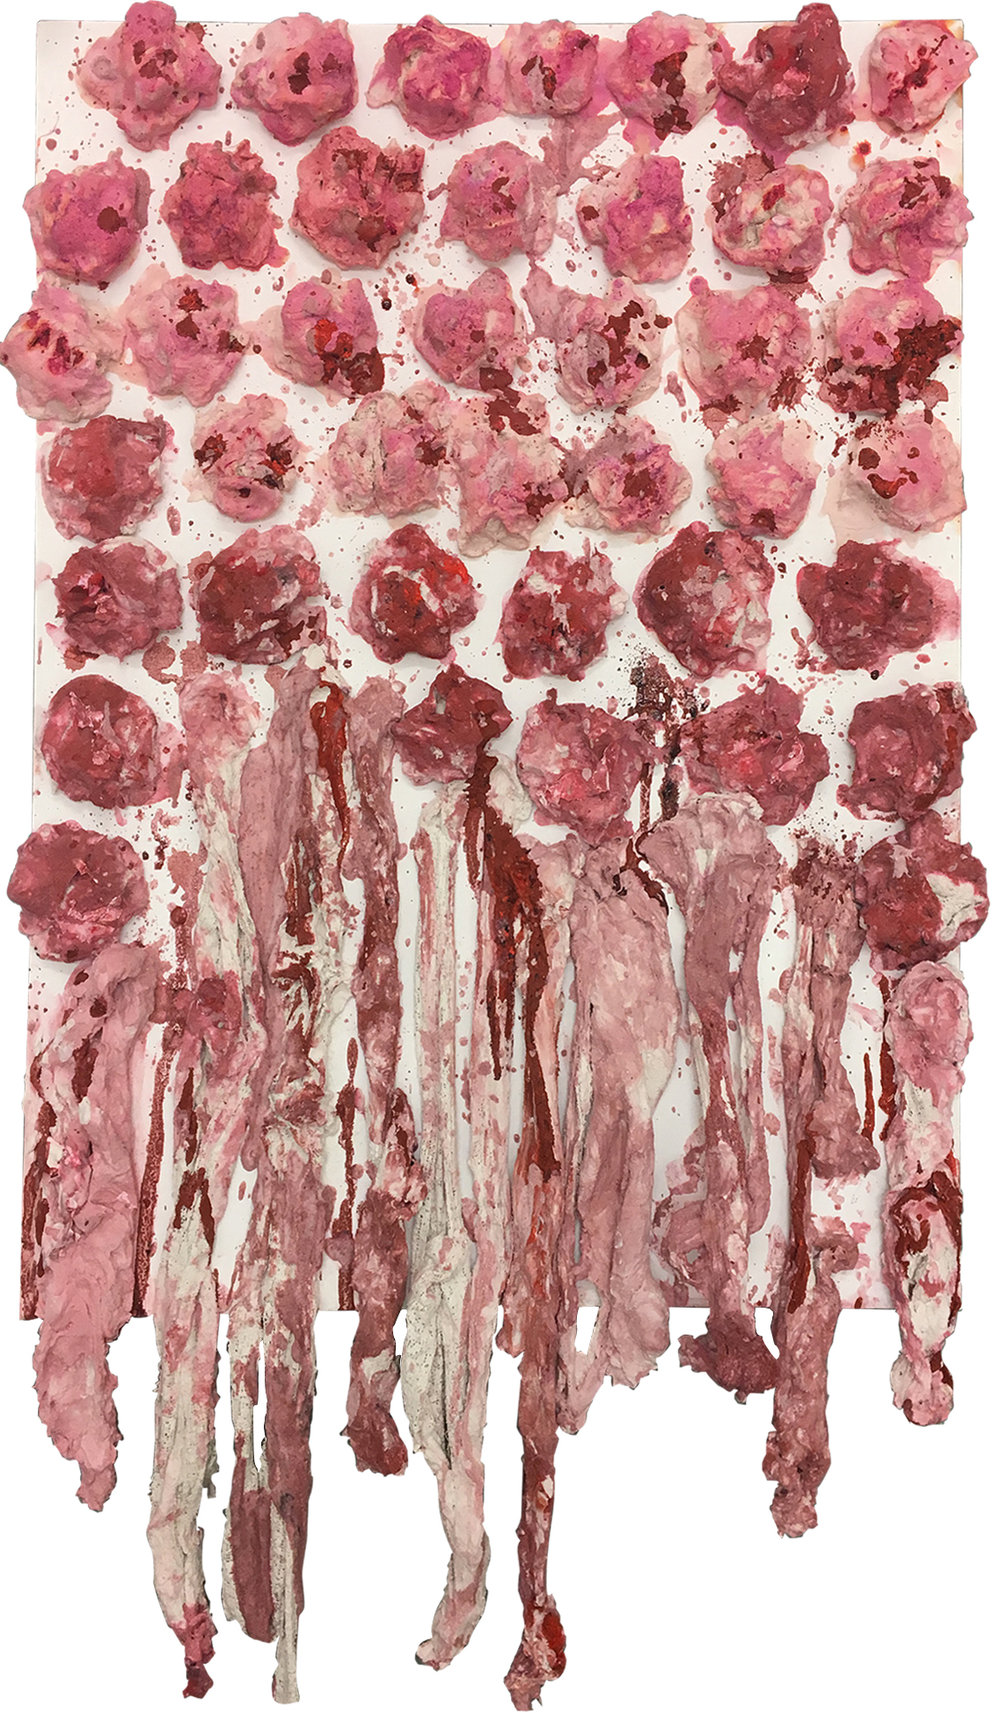 """Blood Clots"" - Mixed media & ink on canvas - 50 cm x 70 cm"